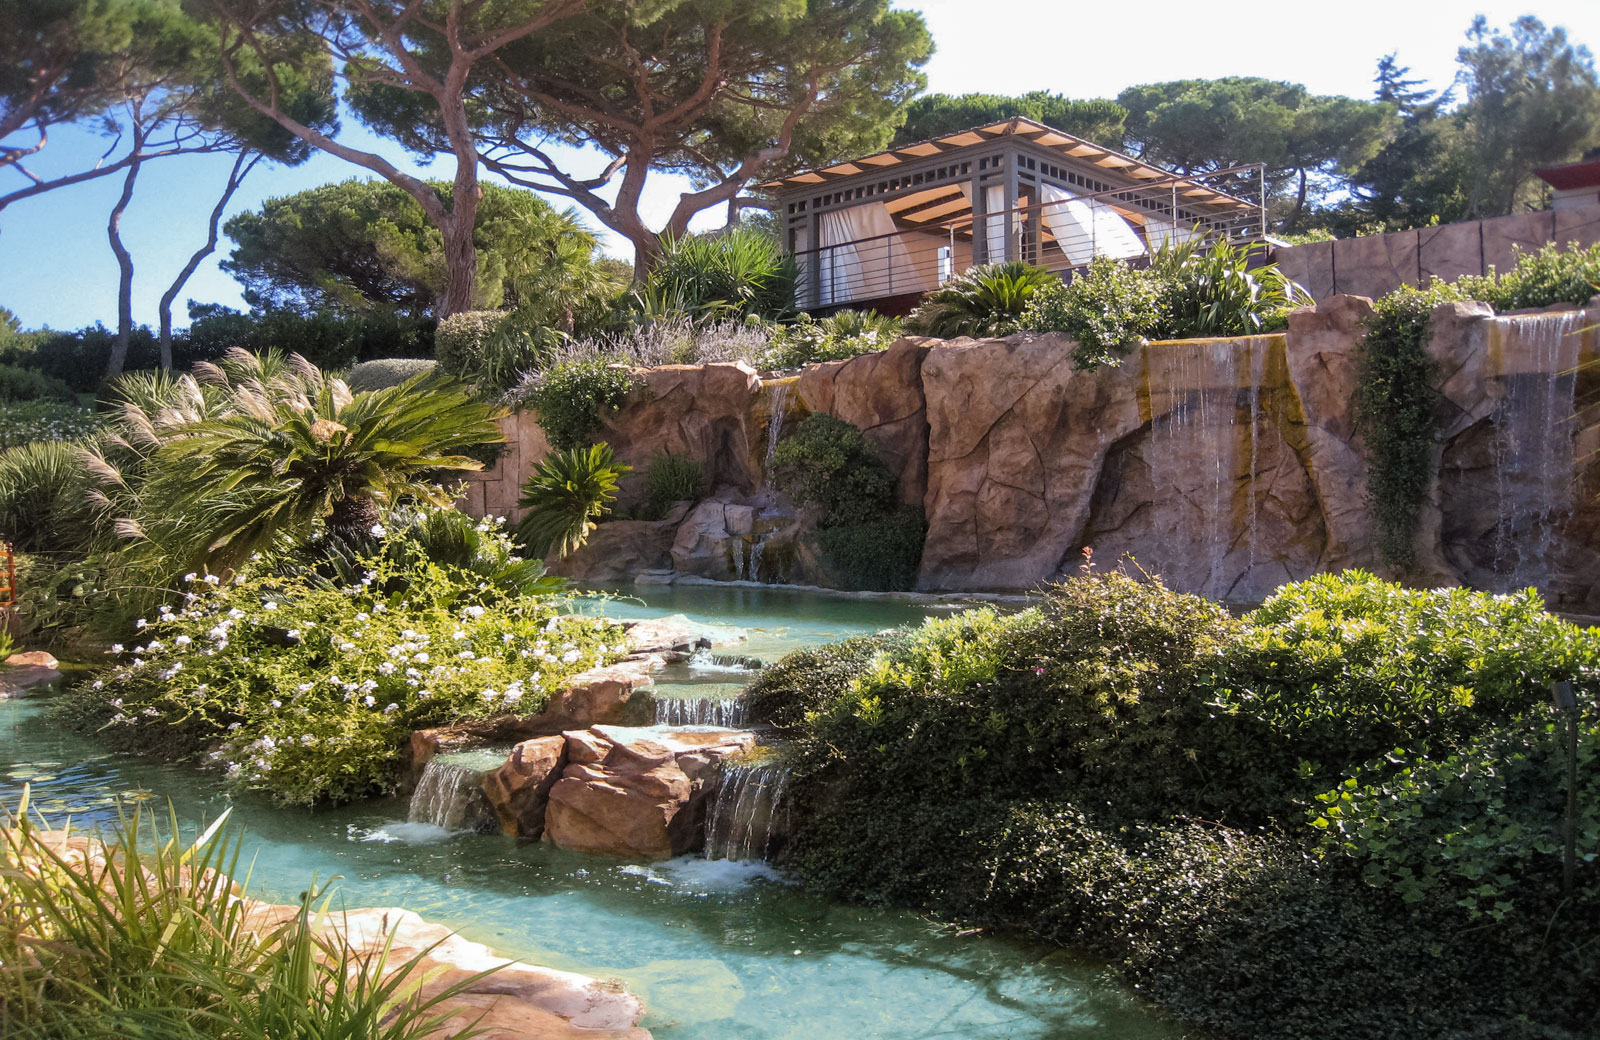 Fishpond with waterfall and landscaped supporting walls